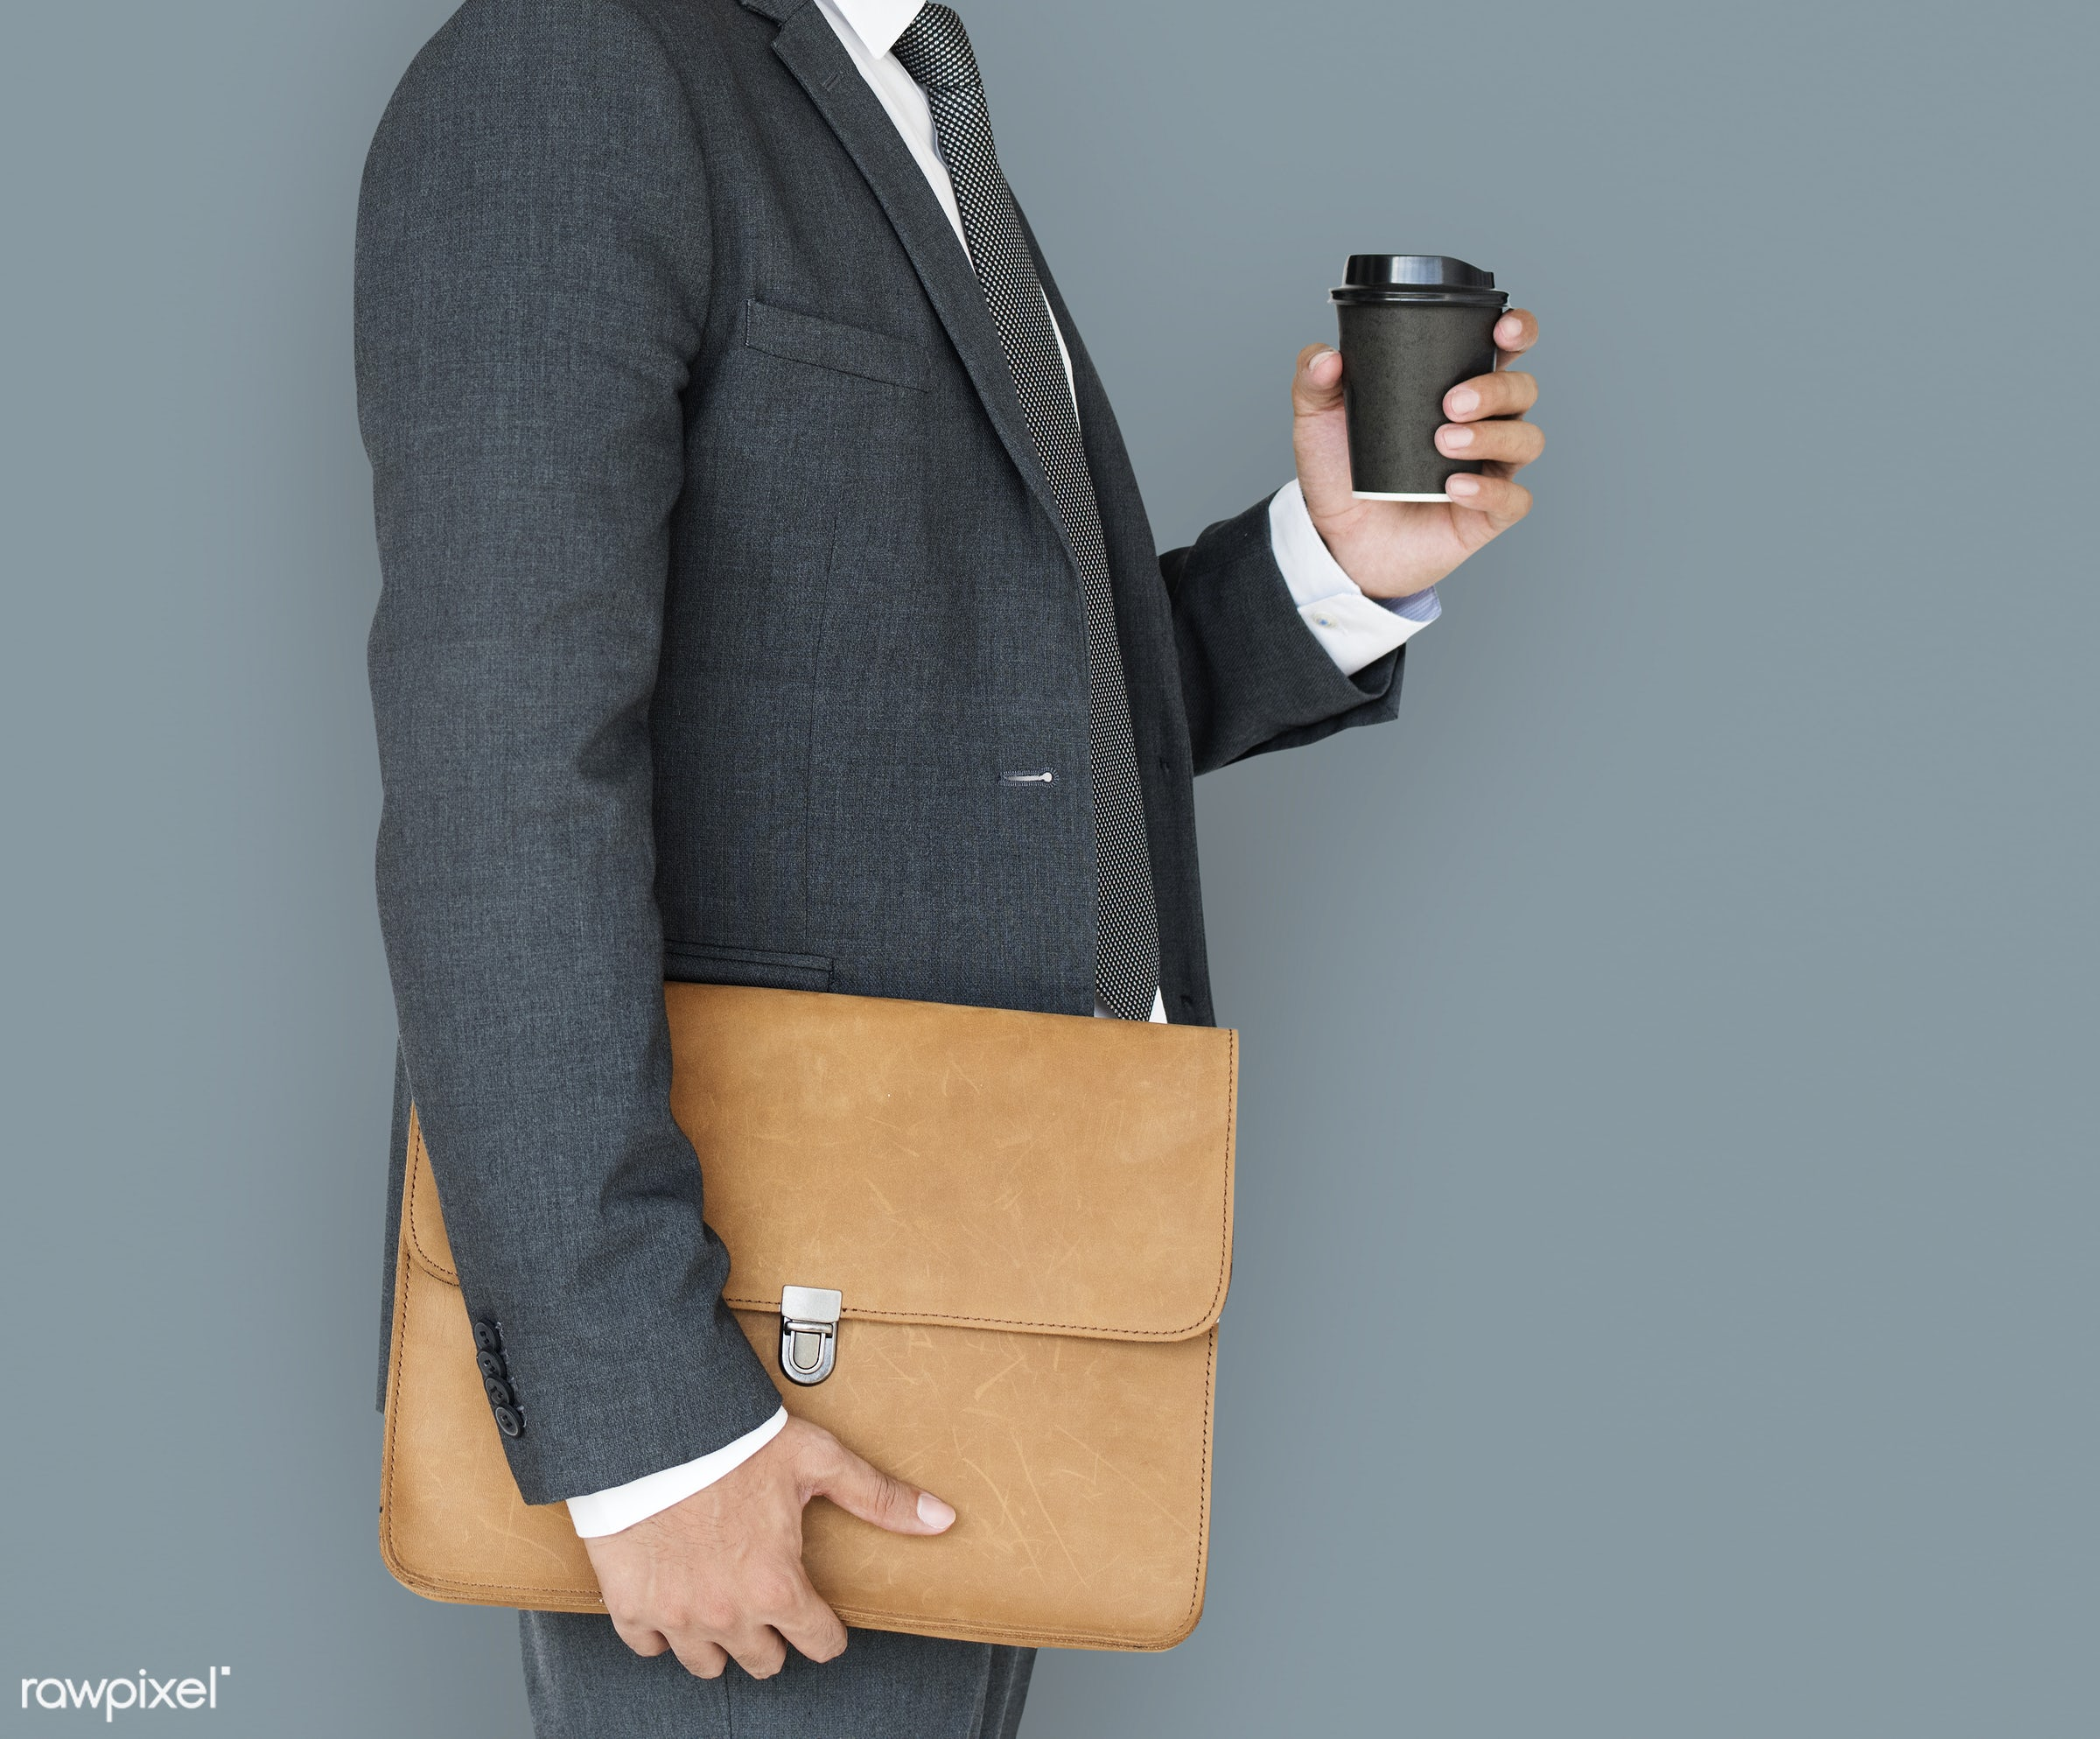 expression, studio, person, business wear, messenger bag, side view, people, business, side, holding coffee, man, formal...